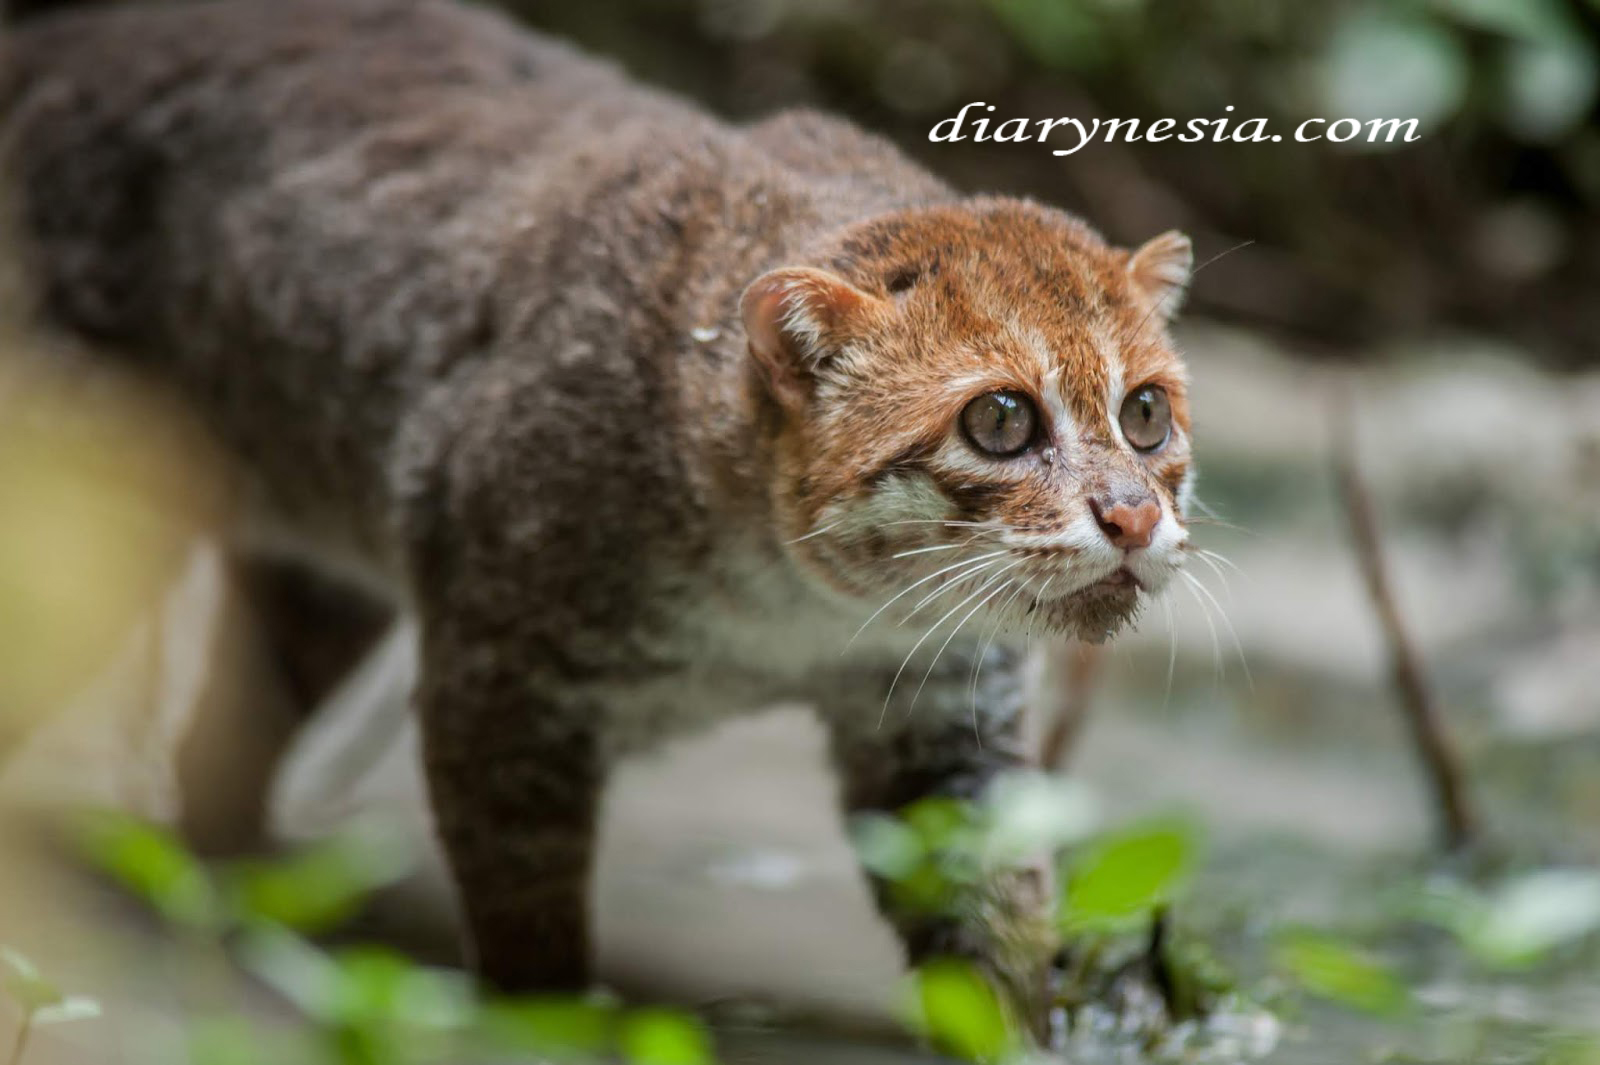 known species of wild cats, different types of wild cats, rare wild cat species, diarynesia.